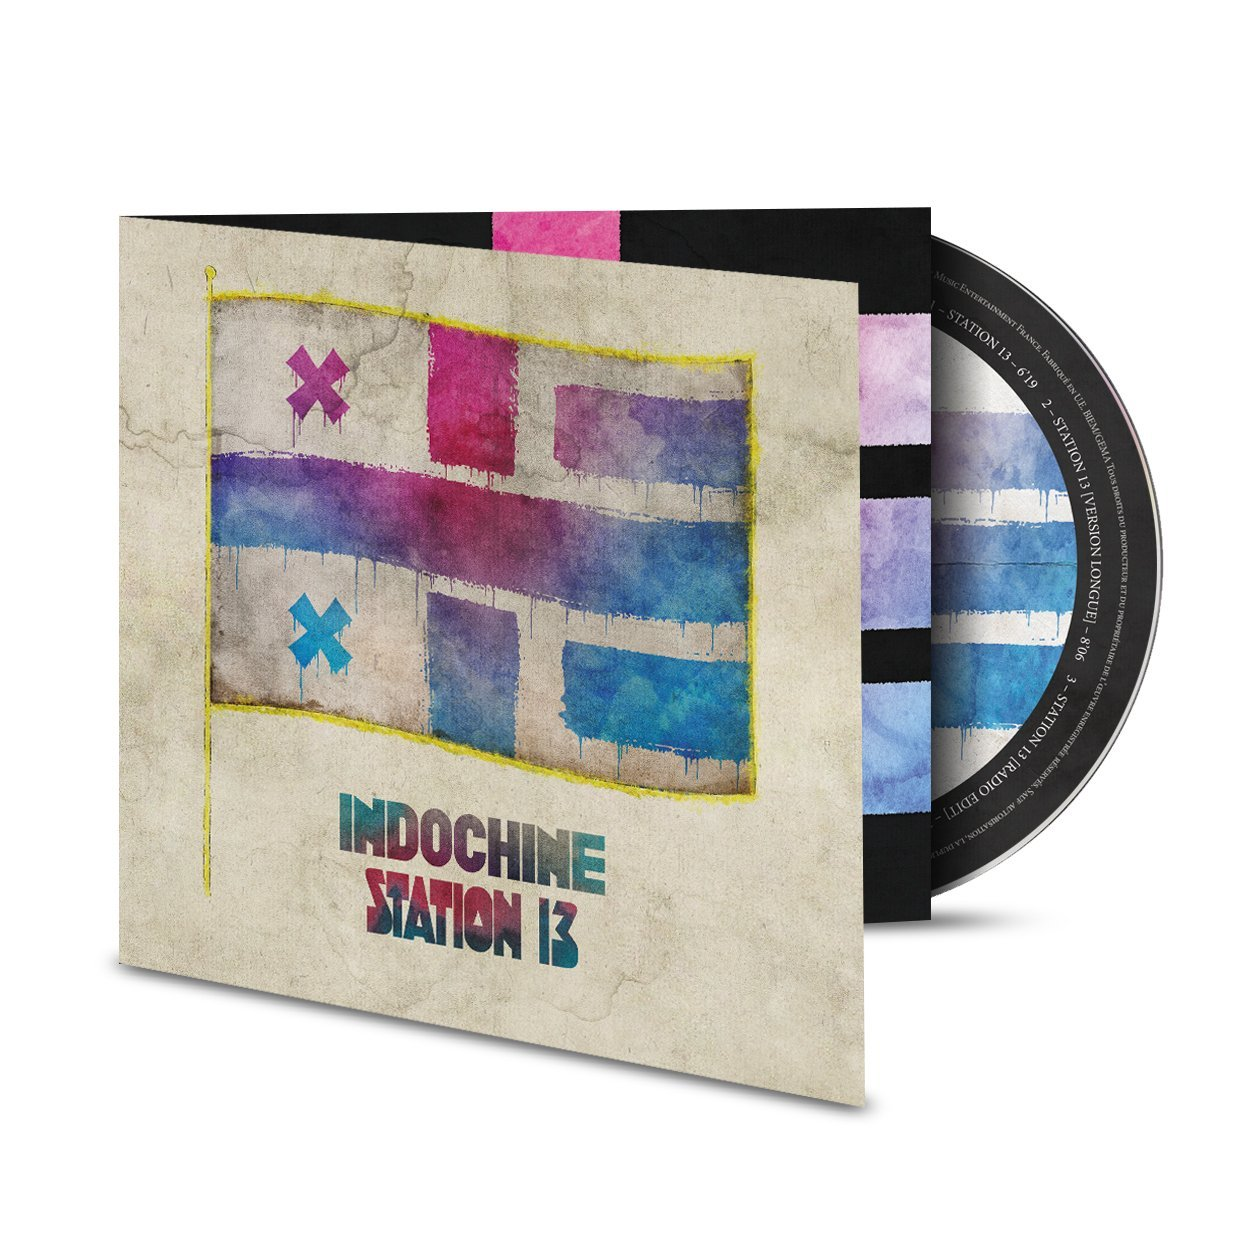 Station 13 - Indochine [maxi single 6 titres]